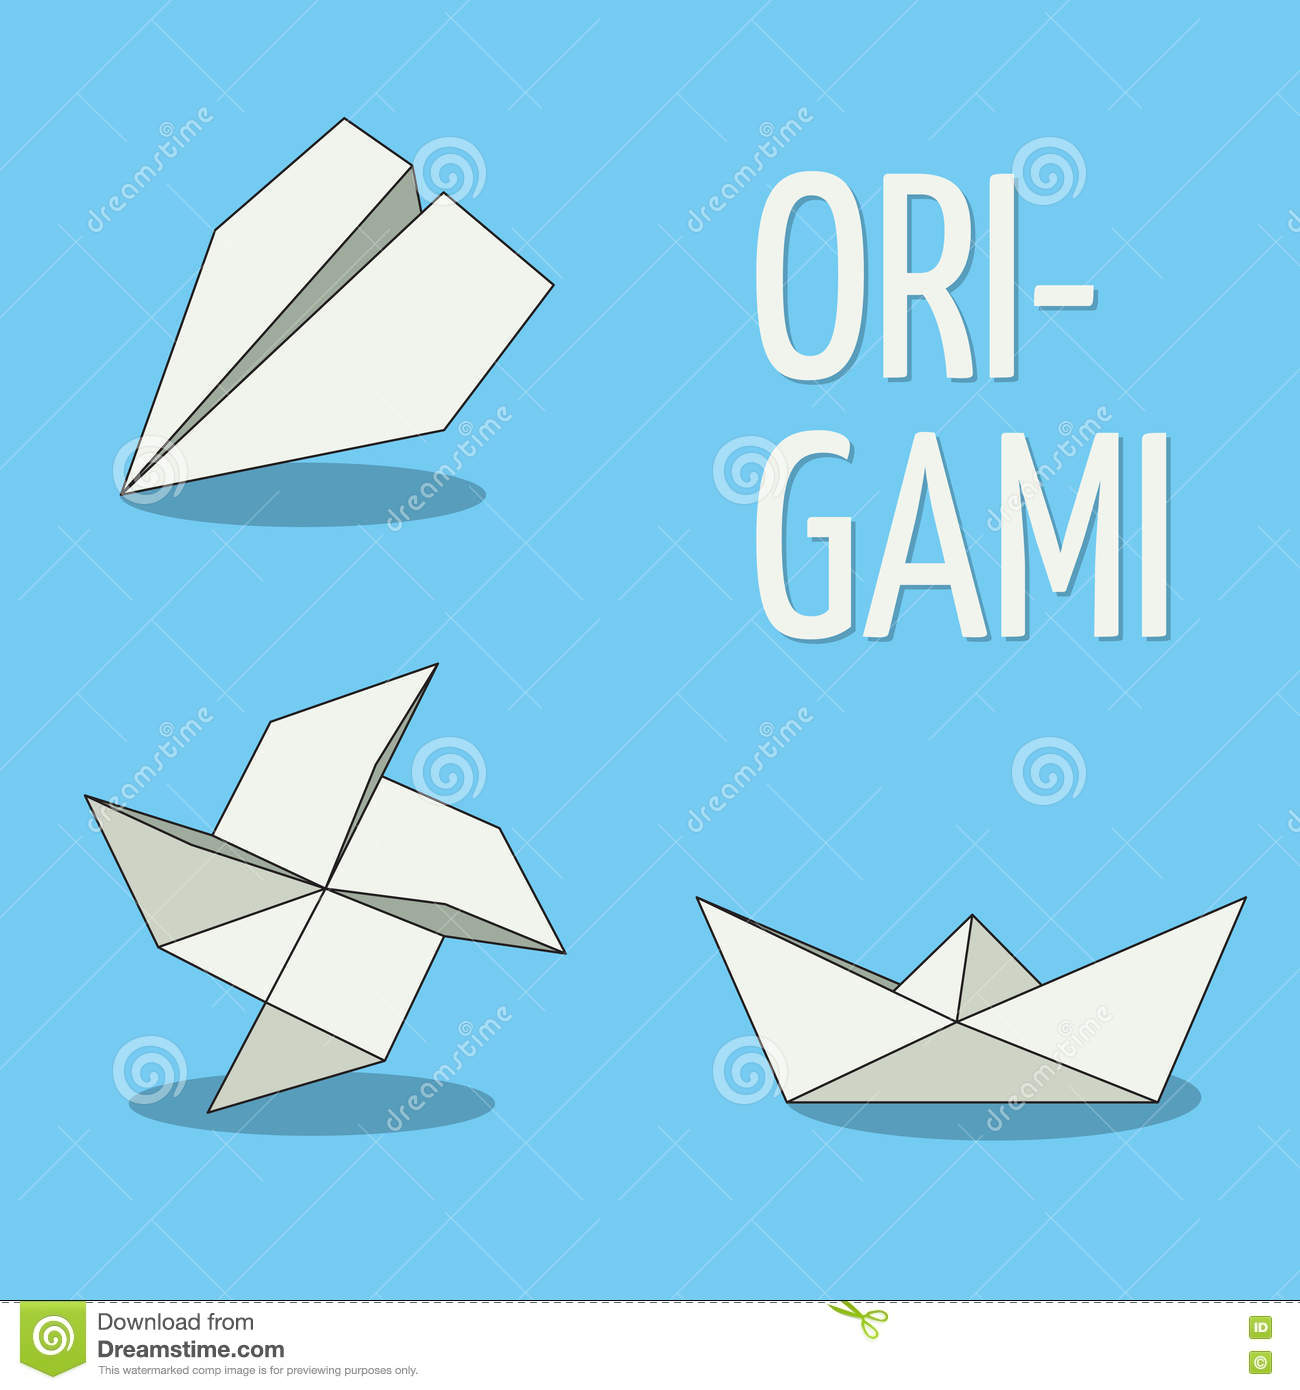 Set of origami objects white on blue background plane pinwheel set of origami objects white on blue background plane pinwheel and boat jeuxipadfo Choice Image